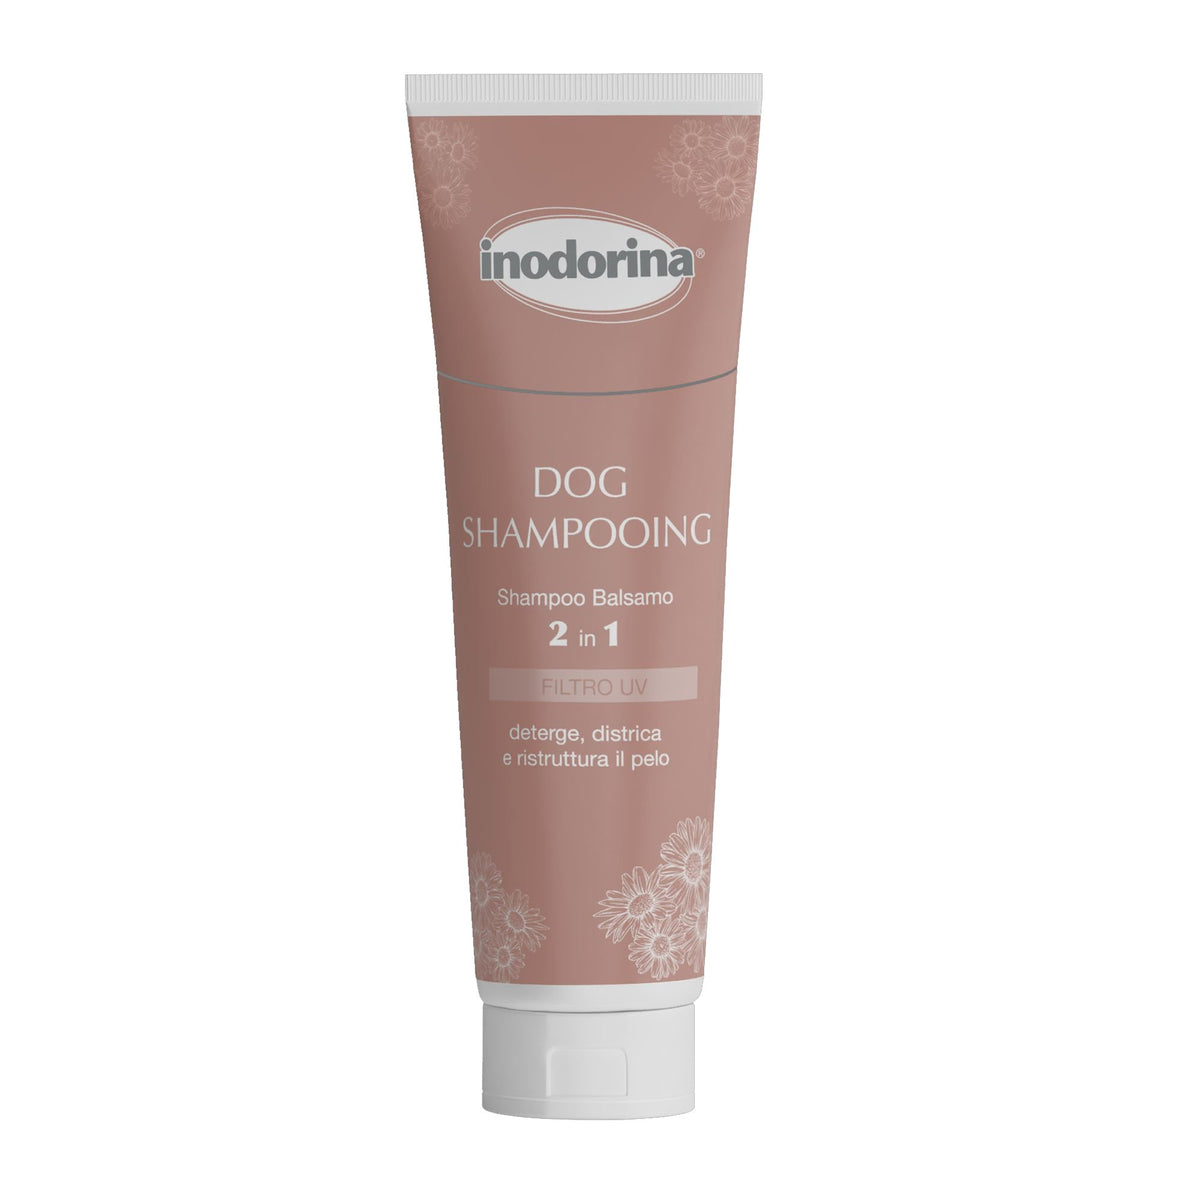 Inodorina Dog Shampooing 2in1 250ml